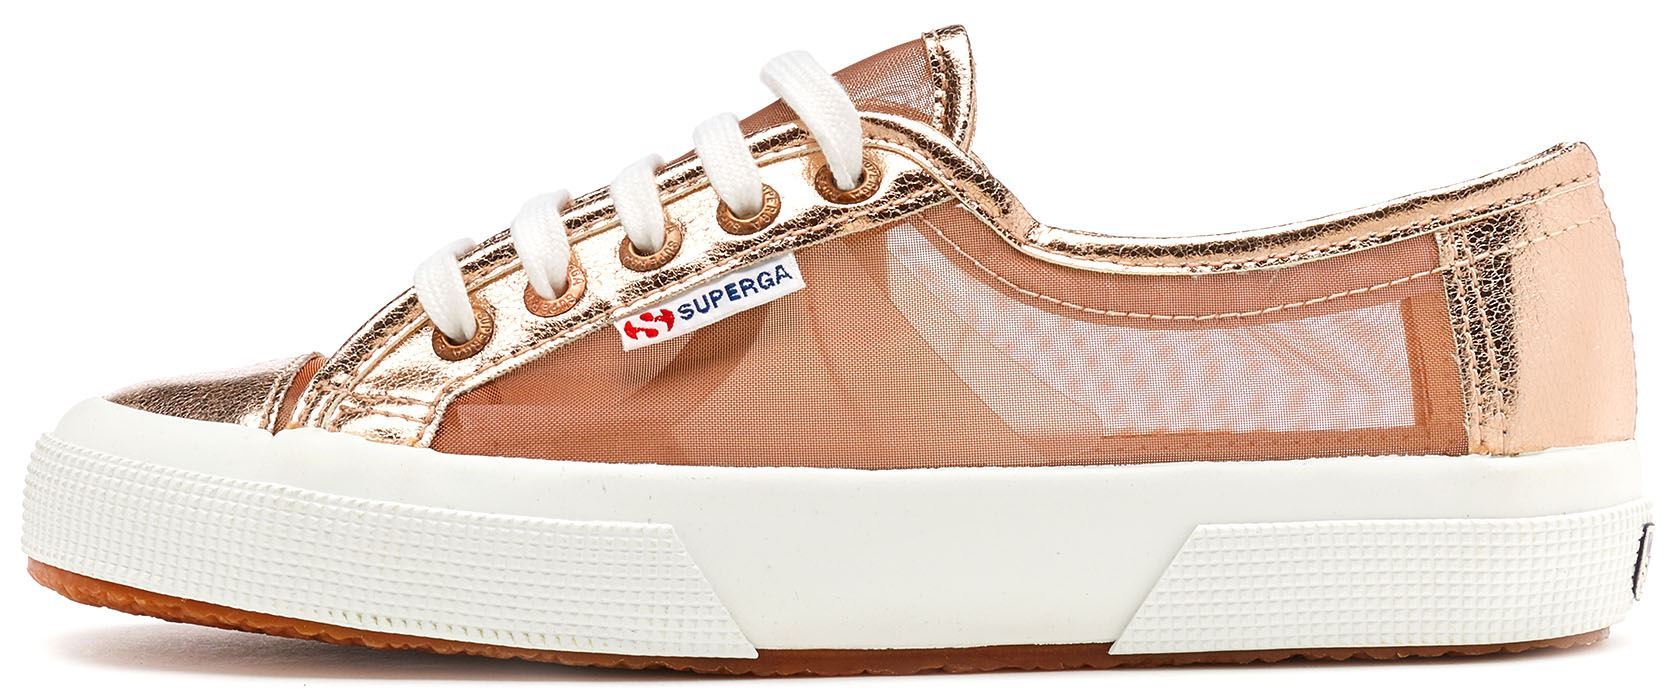 3f1cd3c4d8f7 Details about Superga 2750 Netw See Trough in Metallic Rose Gold C90